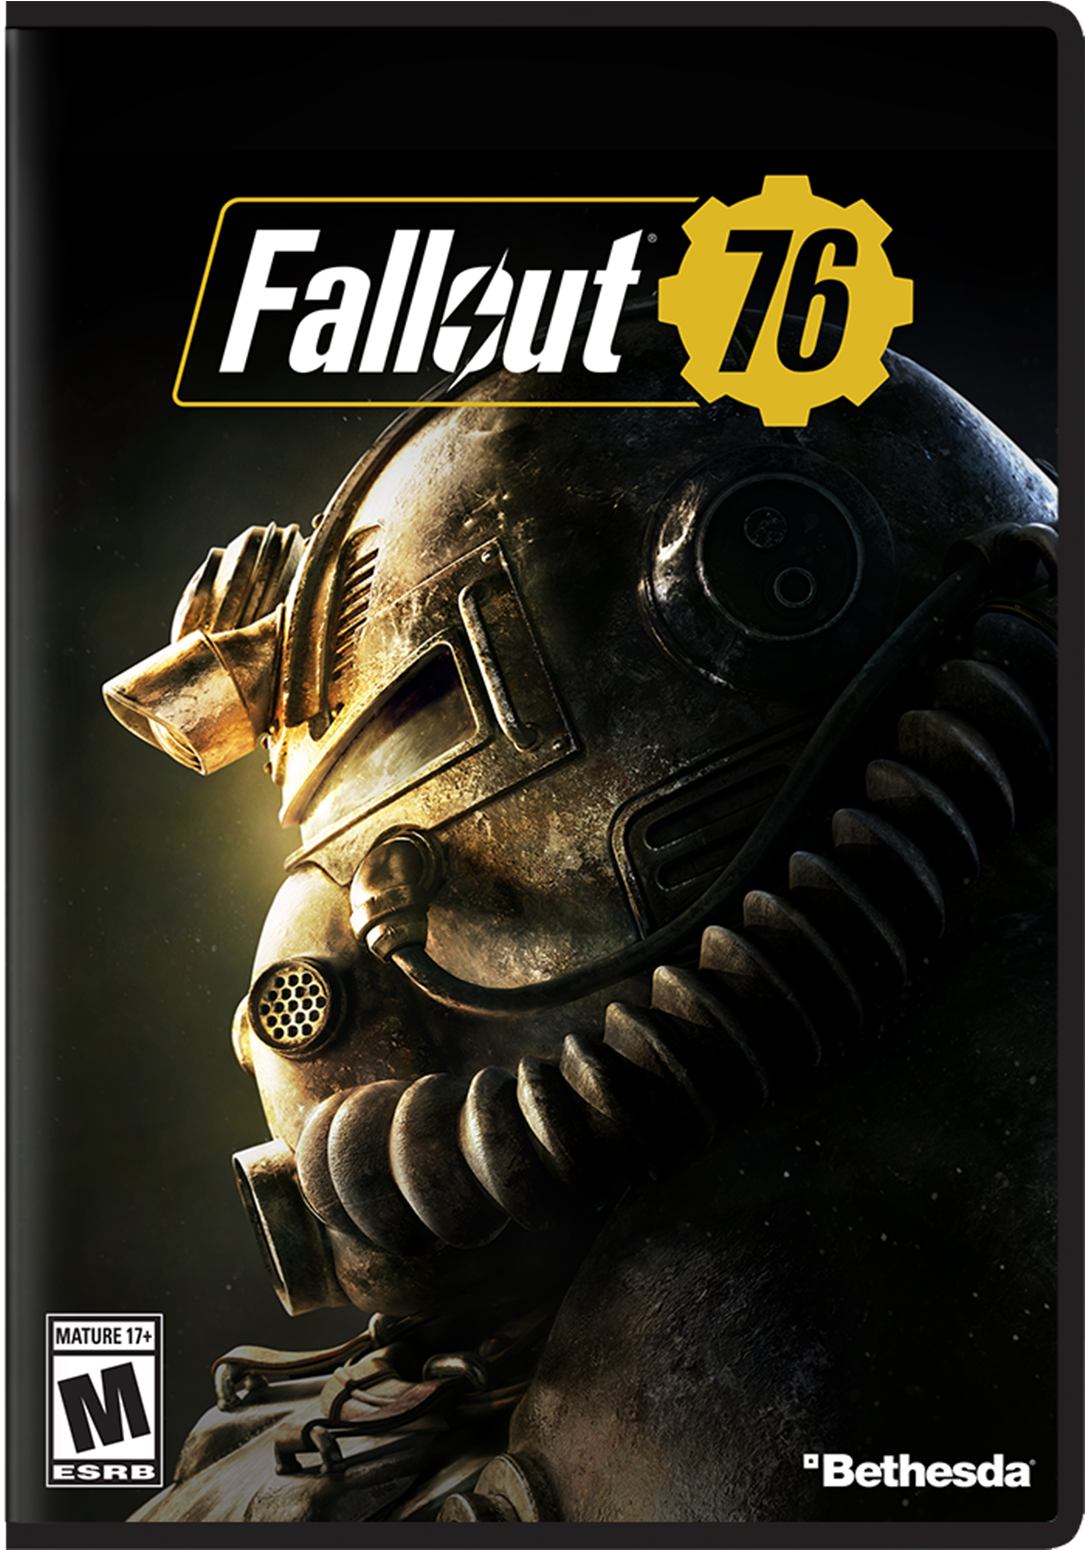 Fallout 76 game for PC.